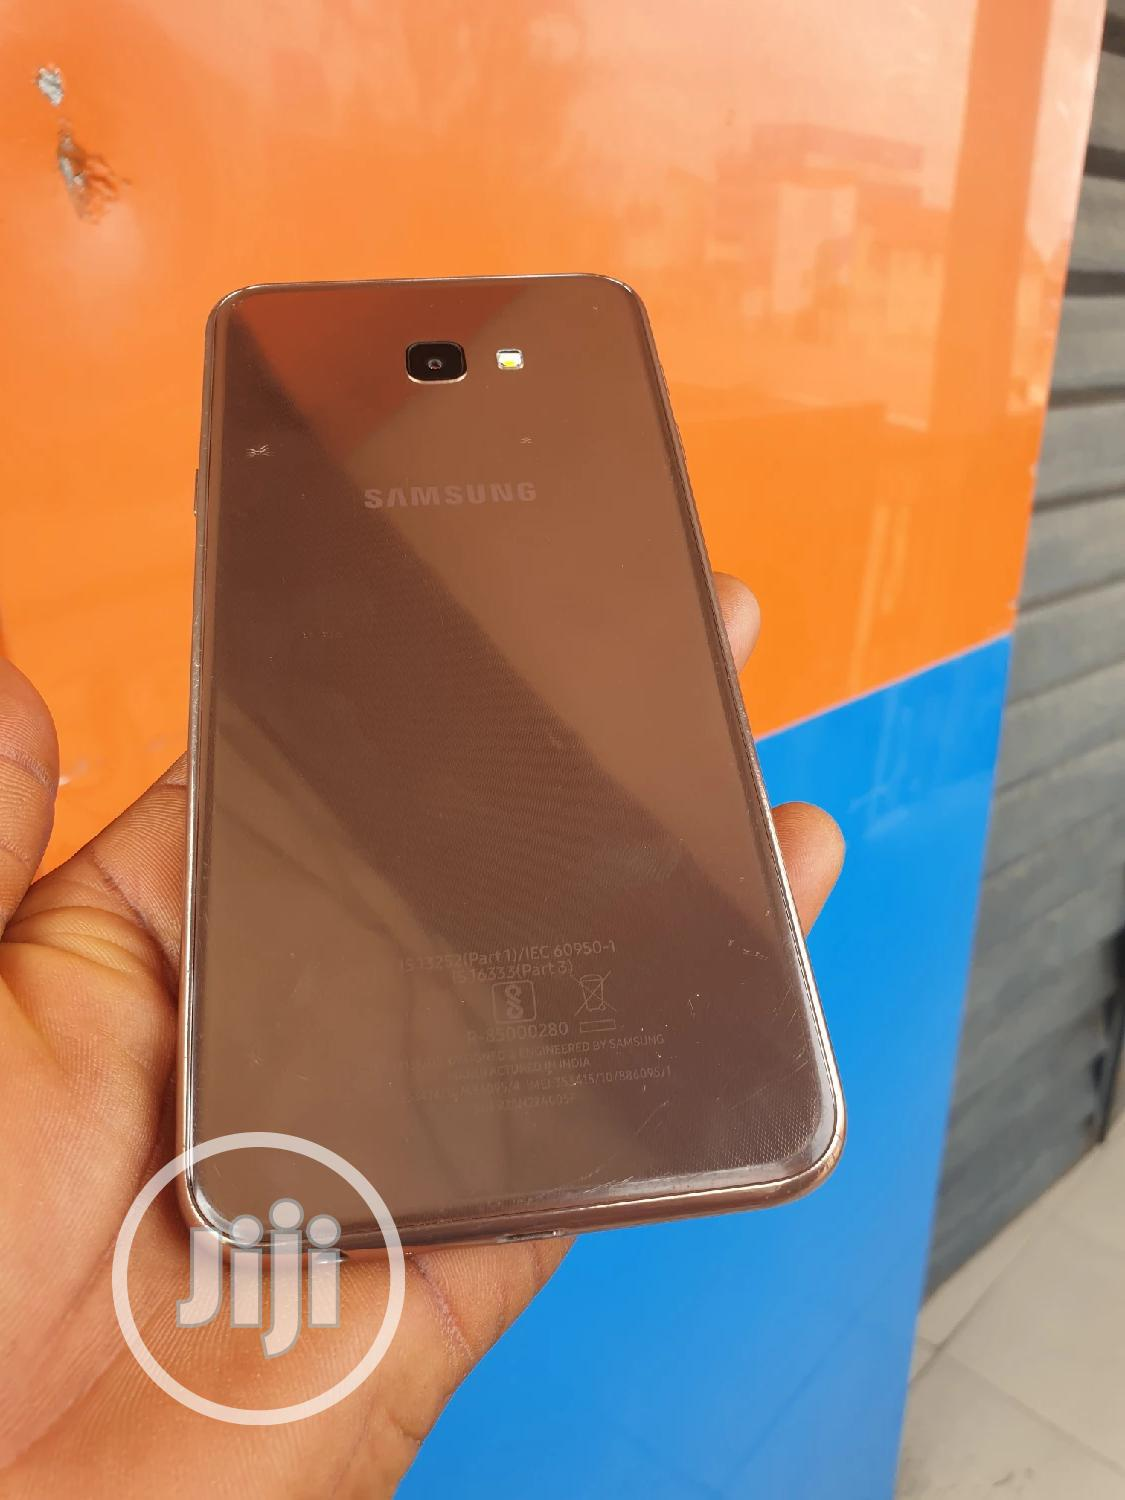 Samsung Galaxy J4 Plus 32 GB Gold | Mobile Phones for sale in Ikeja, Lagos State, Nigeria